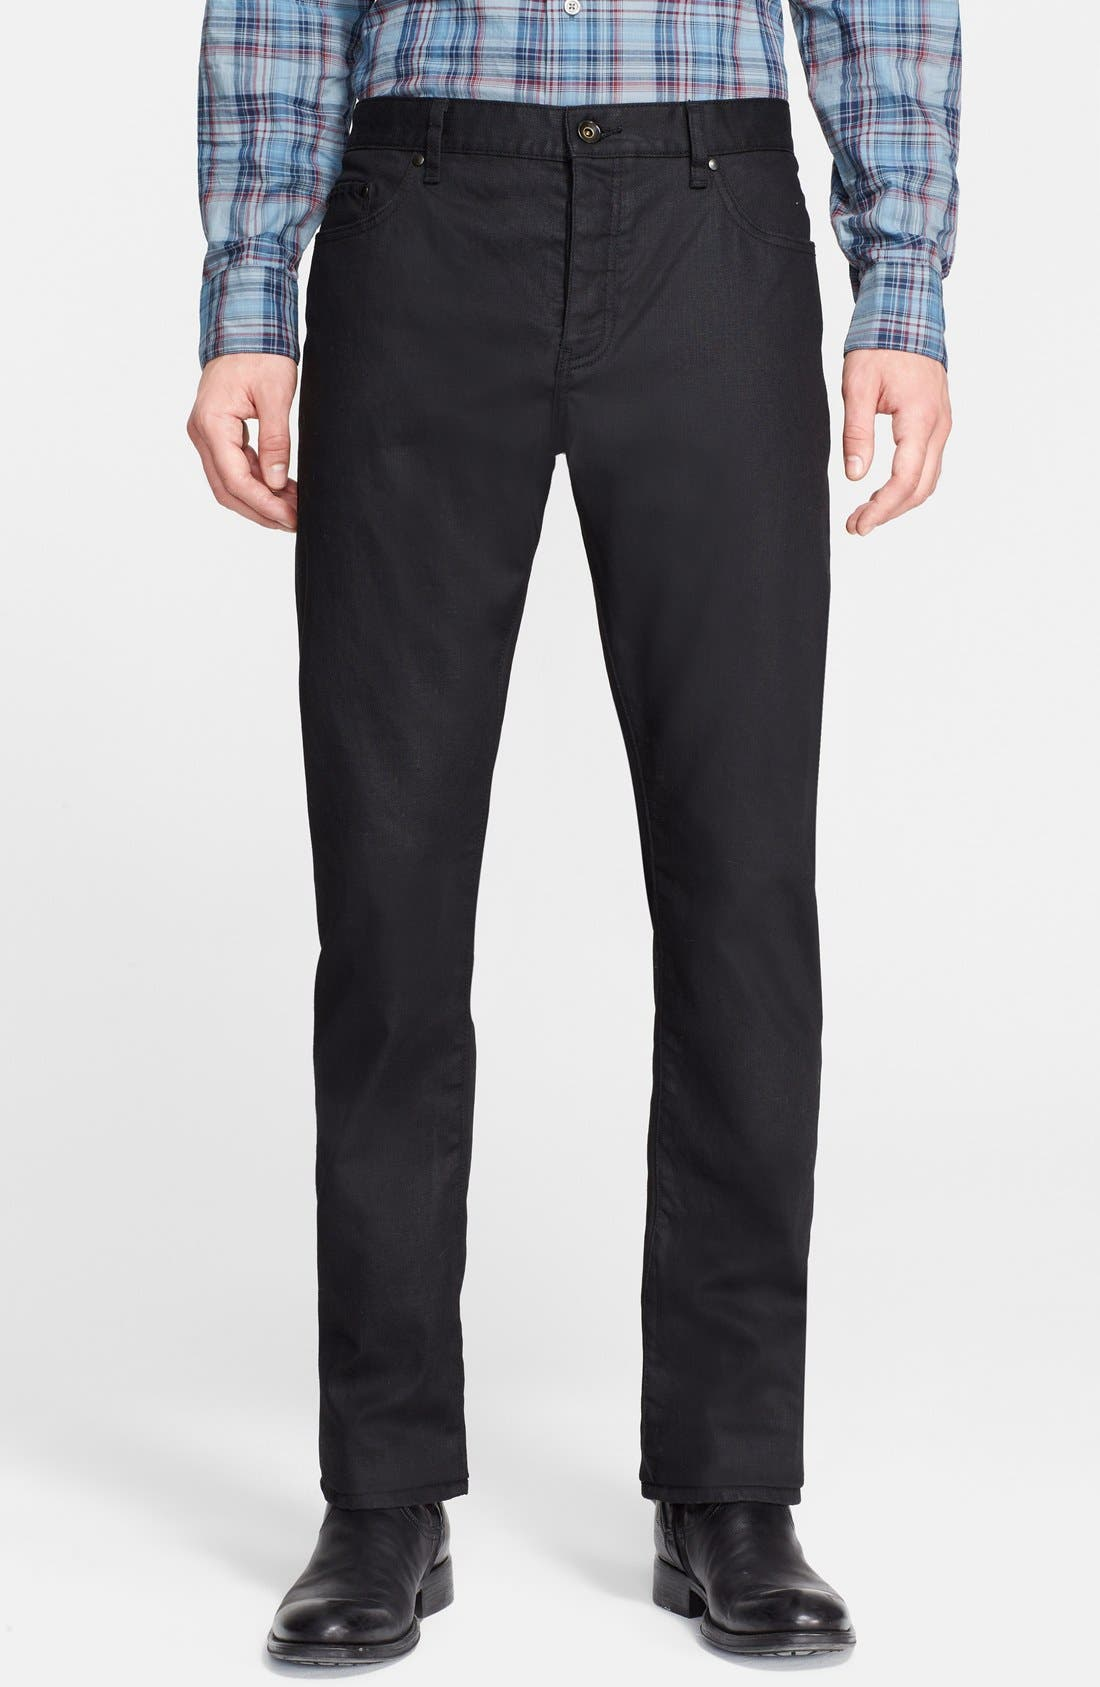 Alternate Image 1 Selected - John Varvatos Collection Slim Fit Jeans (Ink)